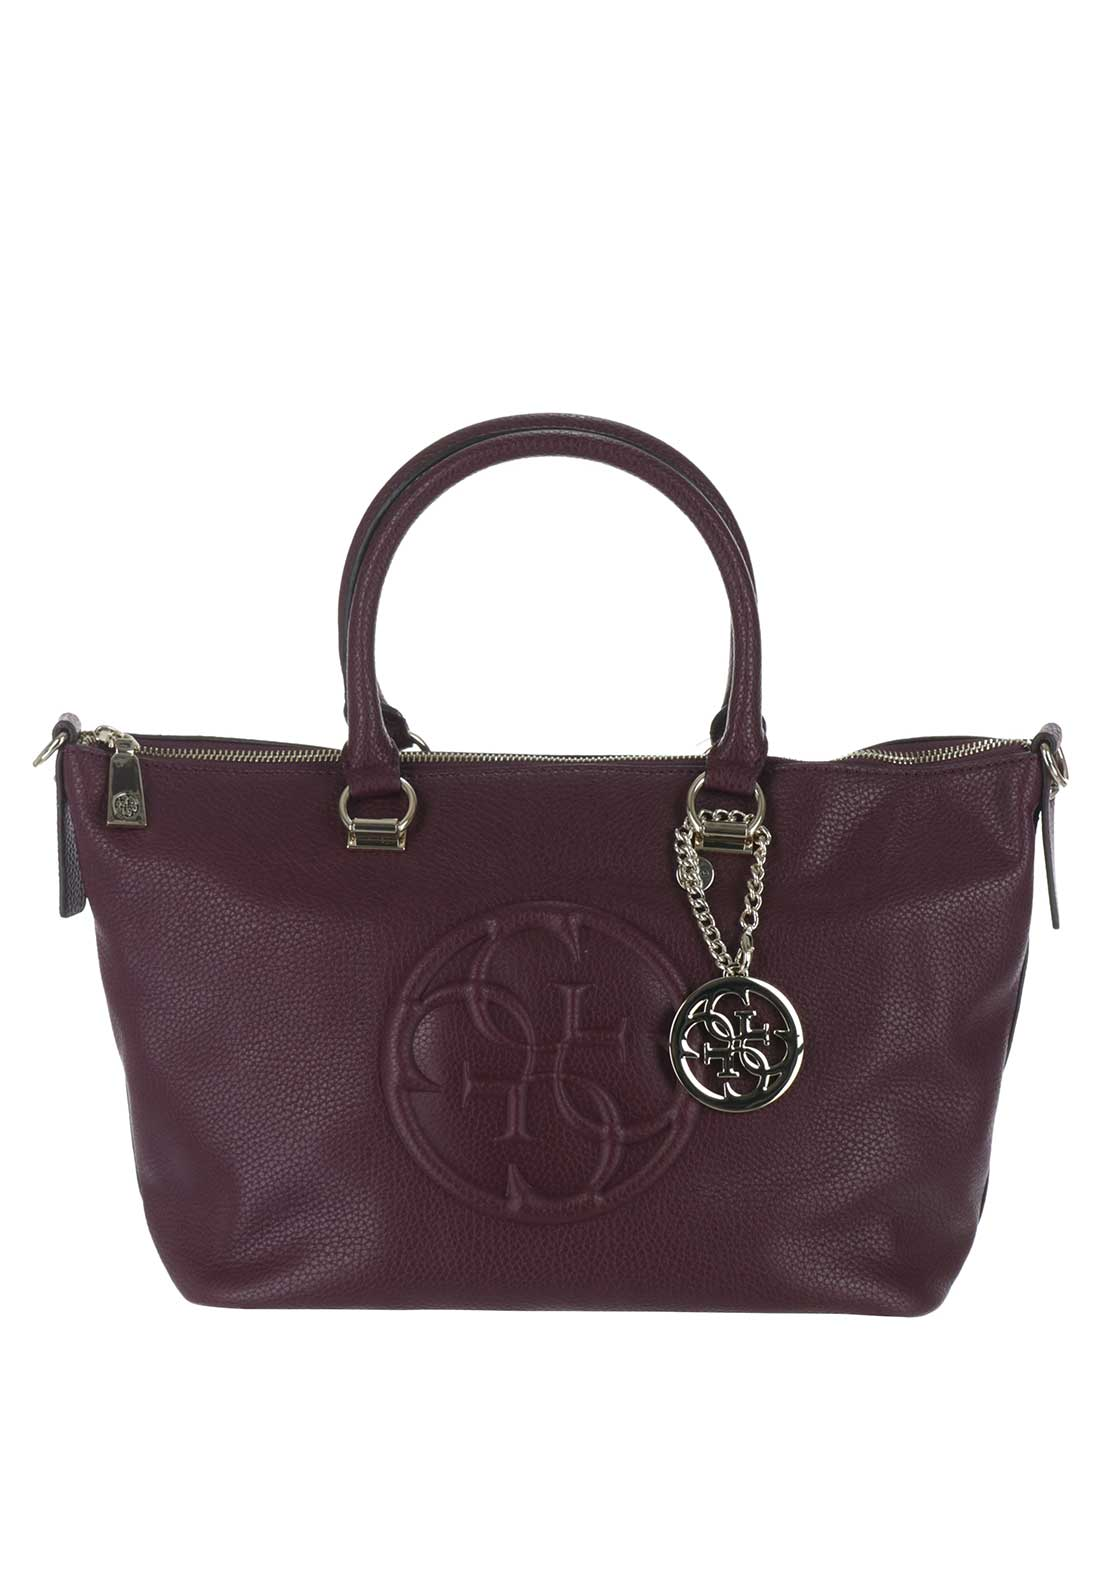 Guess Korry Crush Tote Bag, Bordeaux